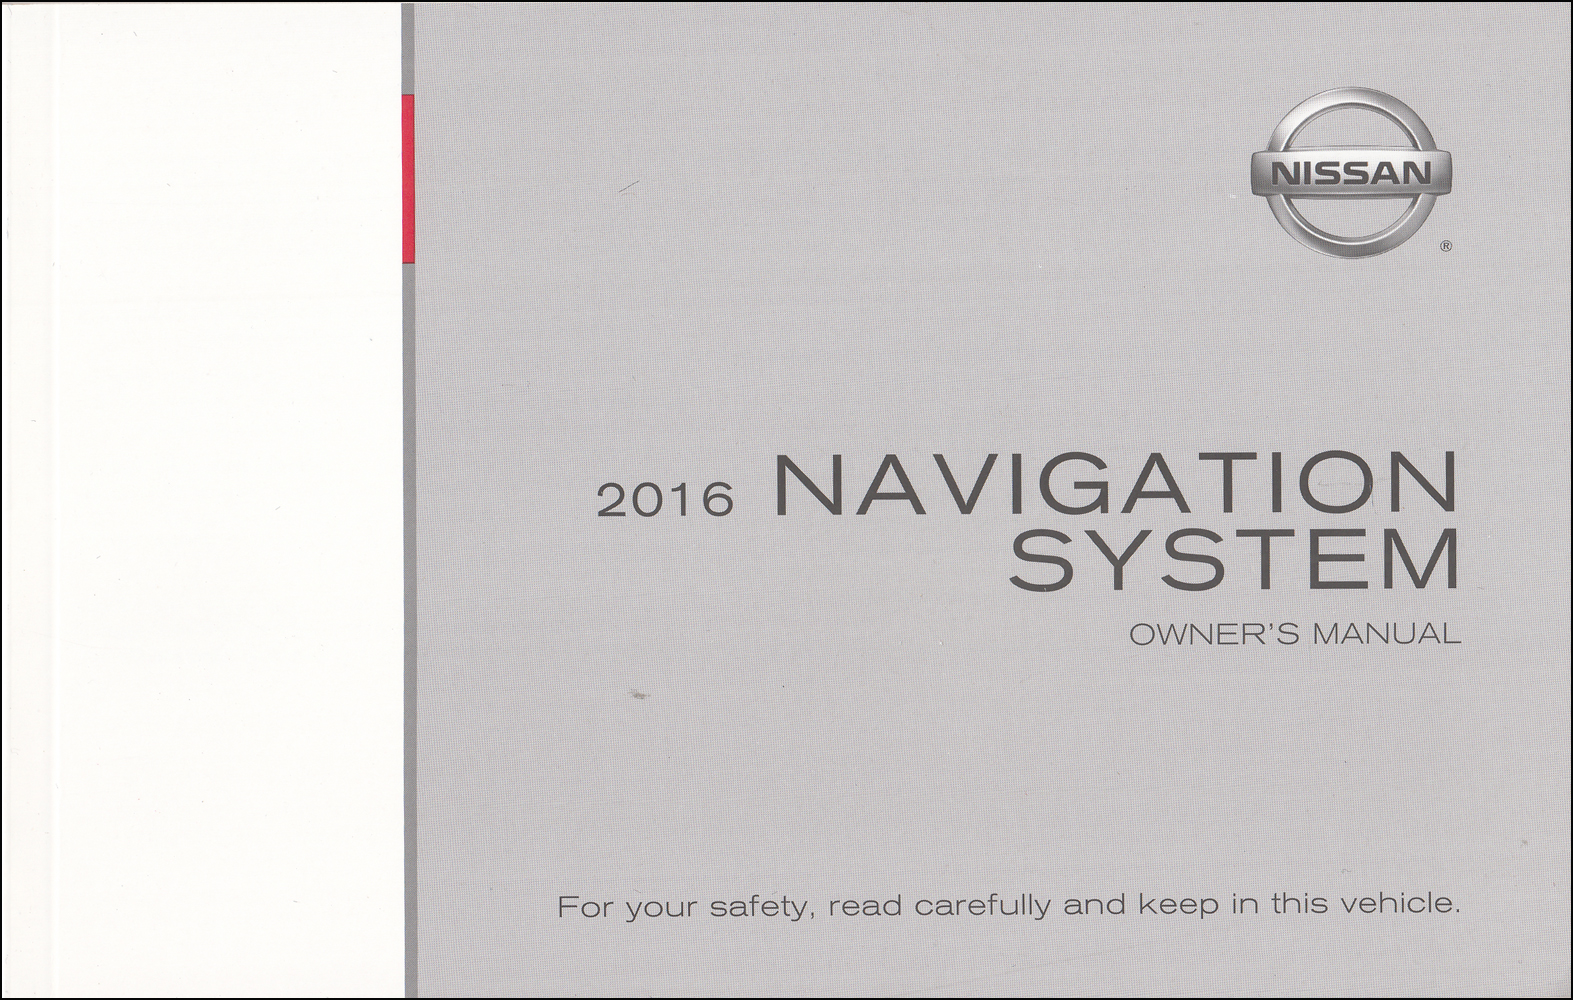 2016 Nissan L2K Navigation System Owners Manual